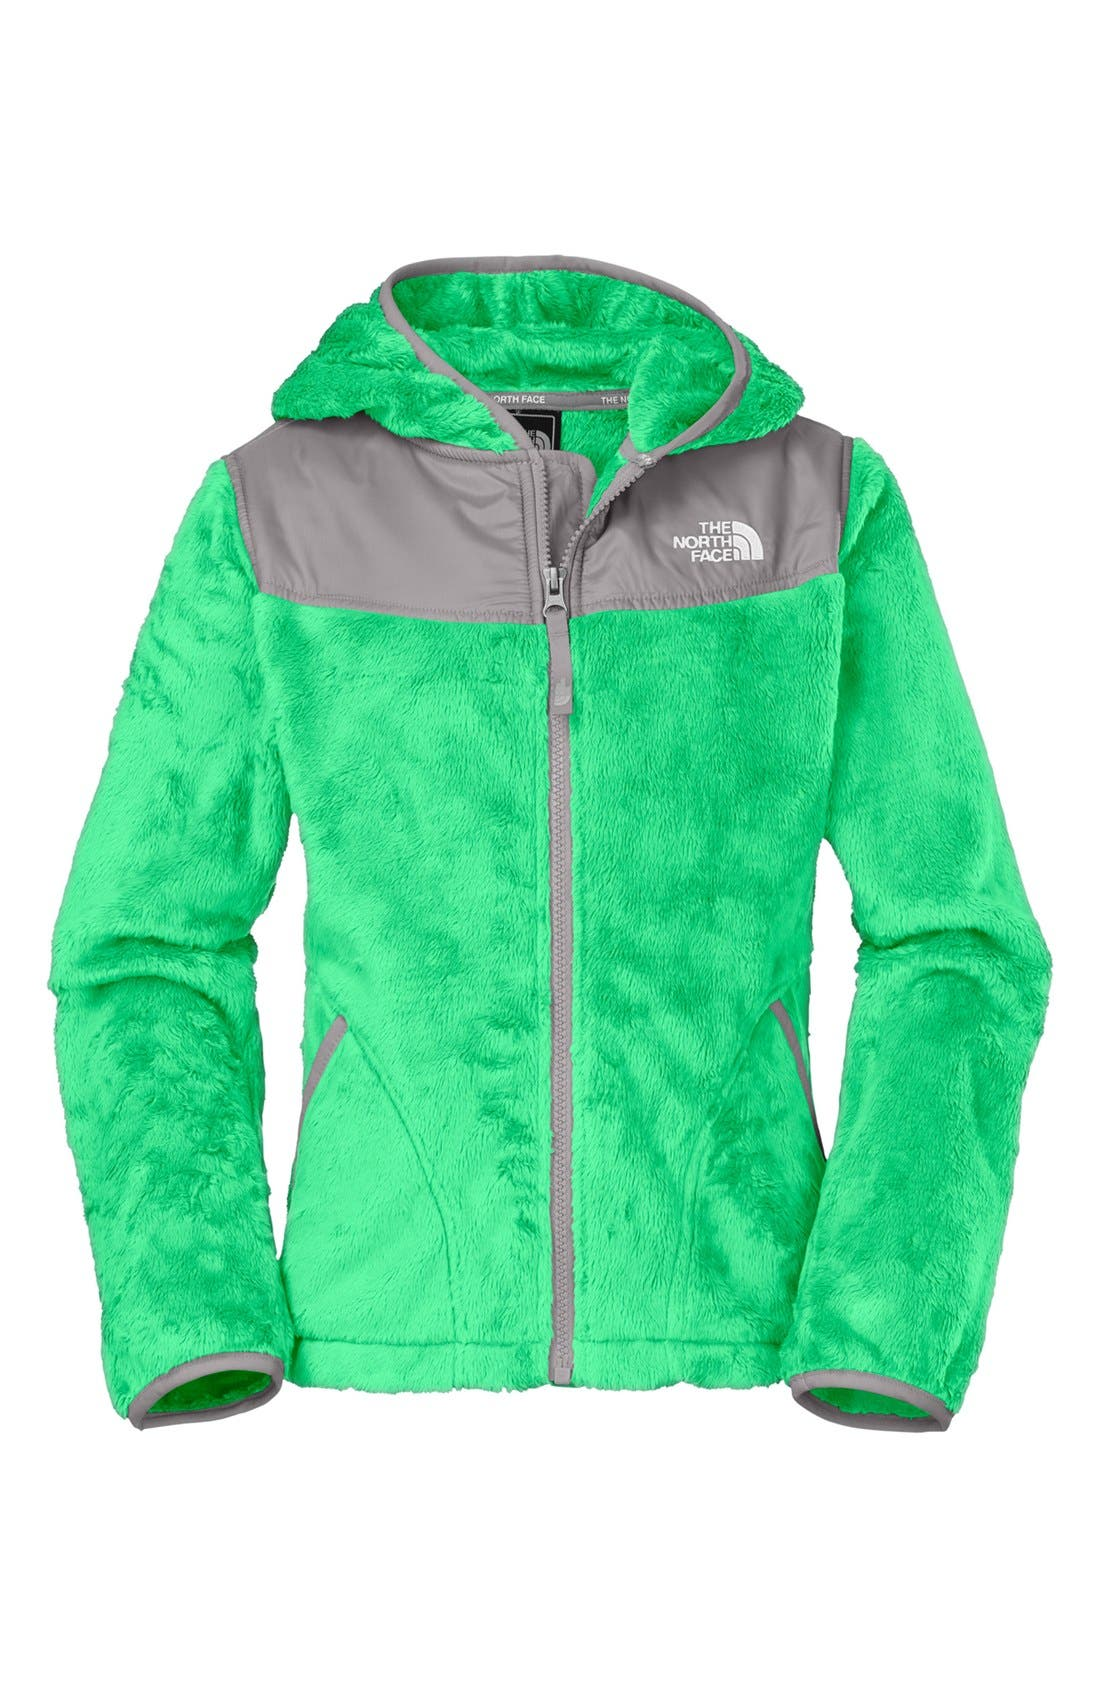 Alternate Image 1 Selected - The North Face 'Oso' Hooded Fleece Jacket (Little Girls & Big Girls)